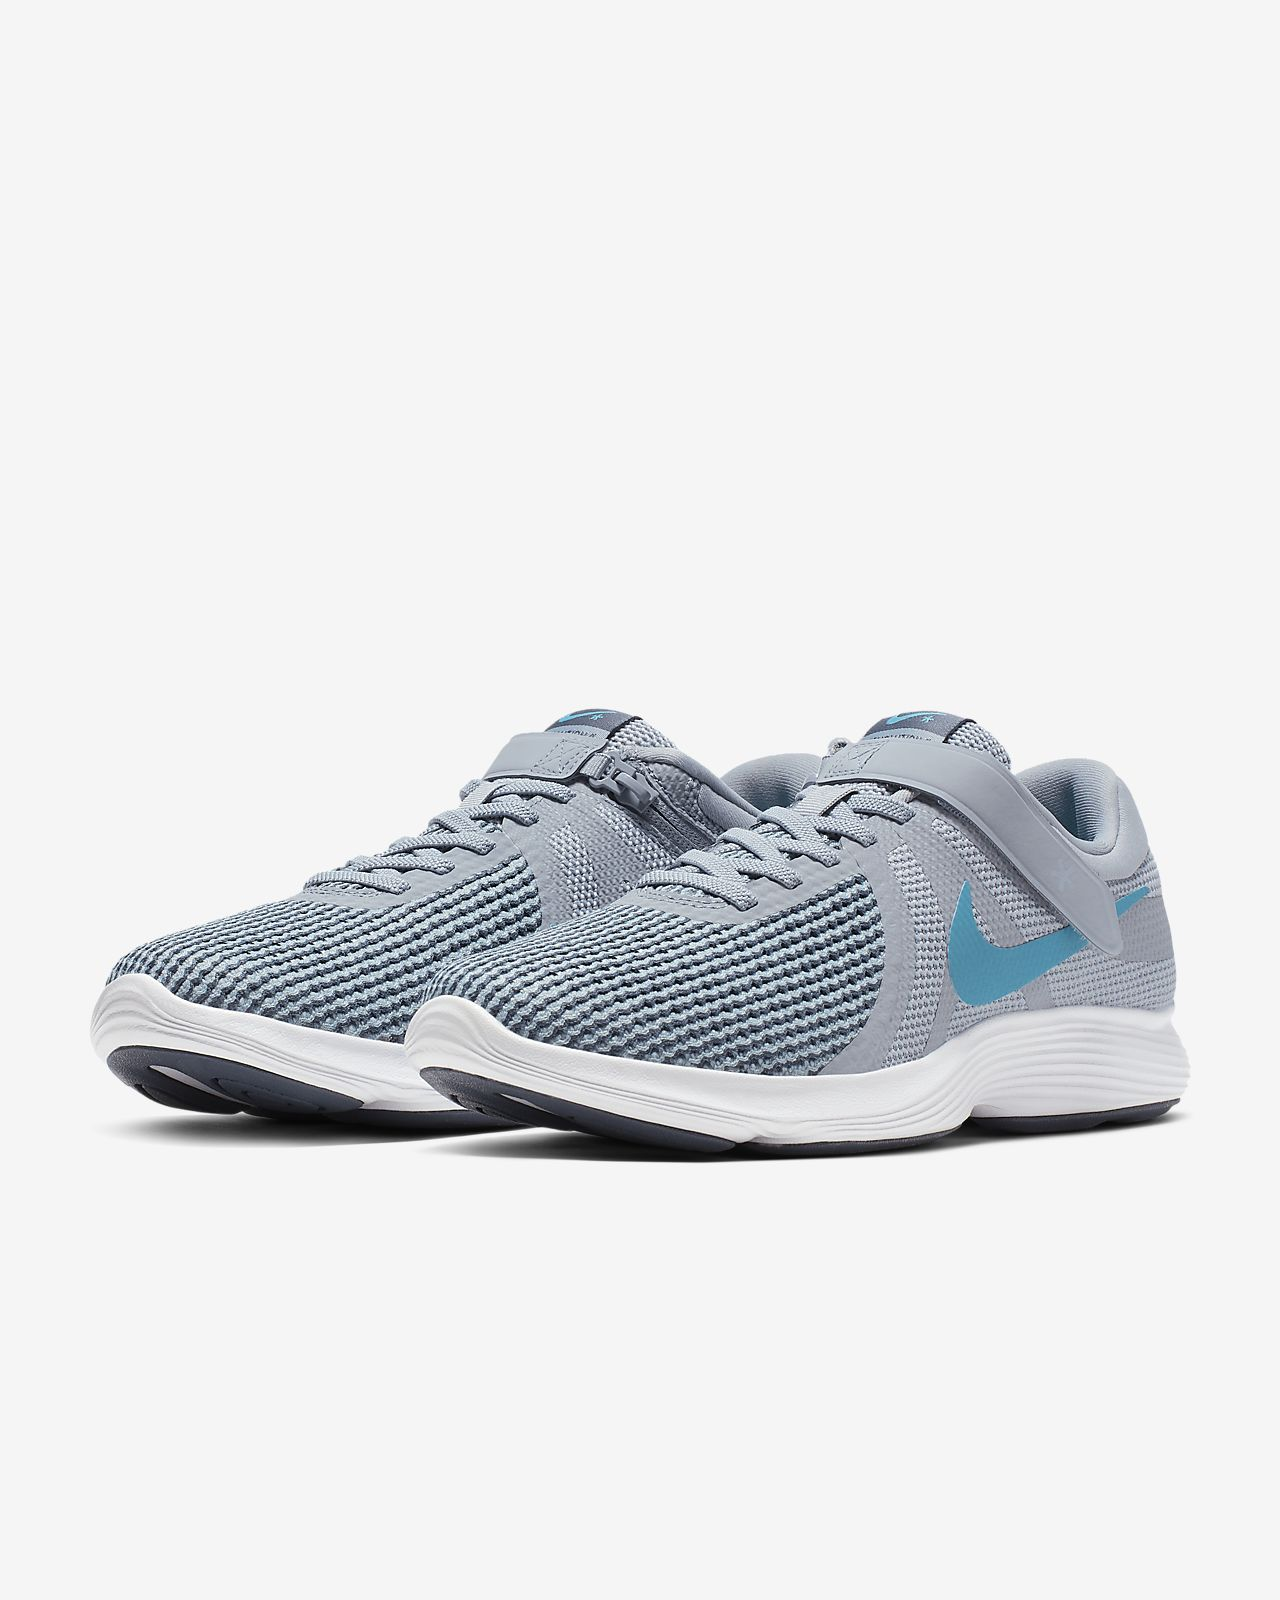 on sale 314a1 f866a ... Nike Revolution 4 FlyEase Men s Running Shoe